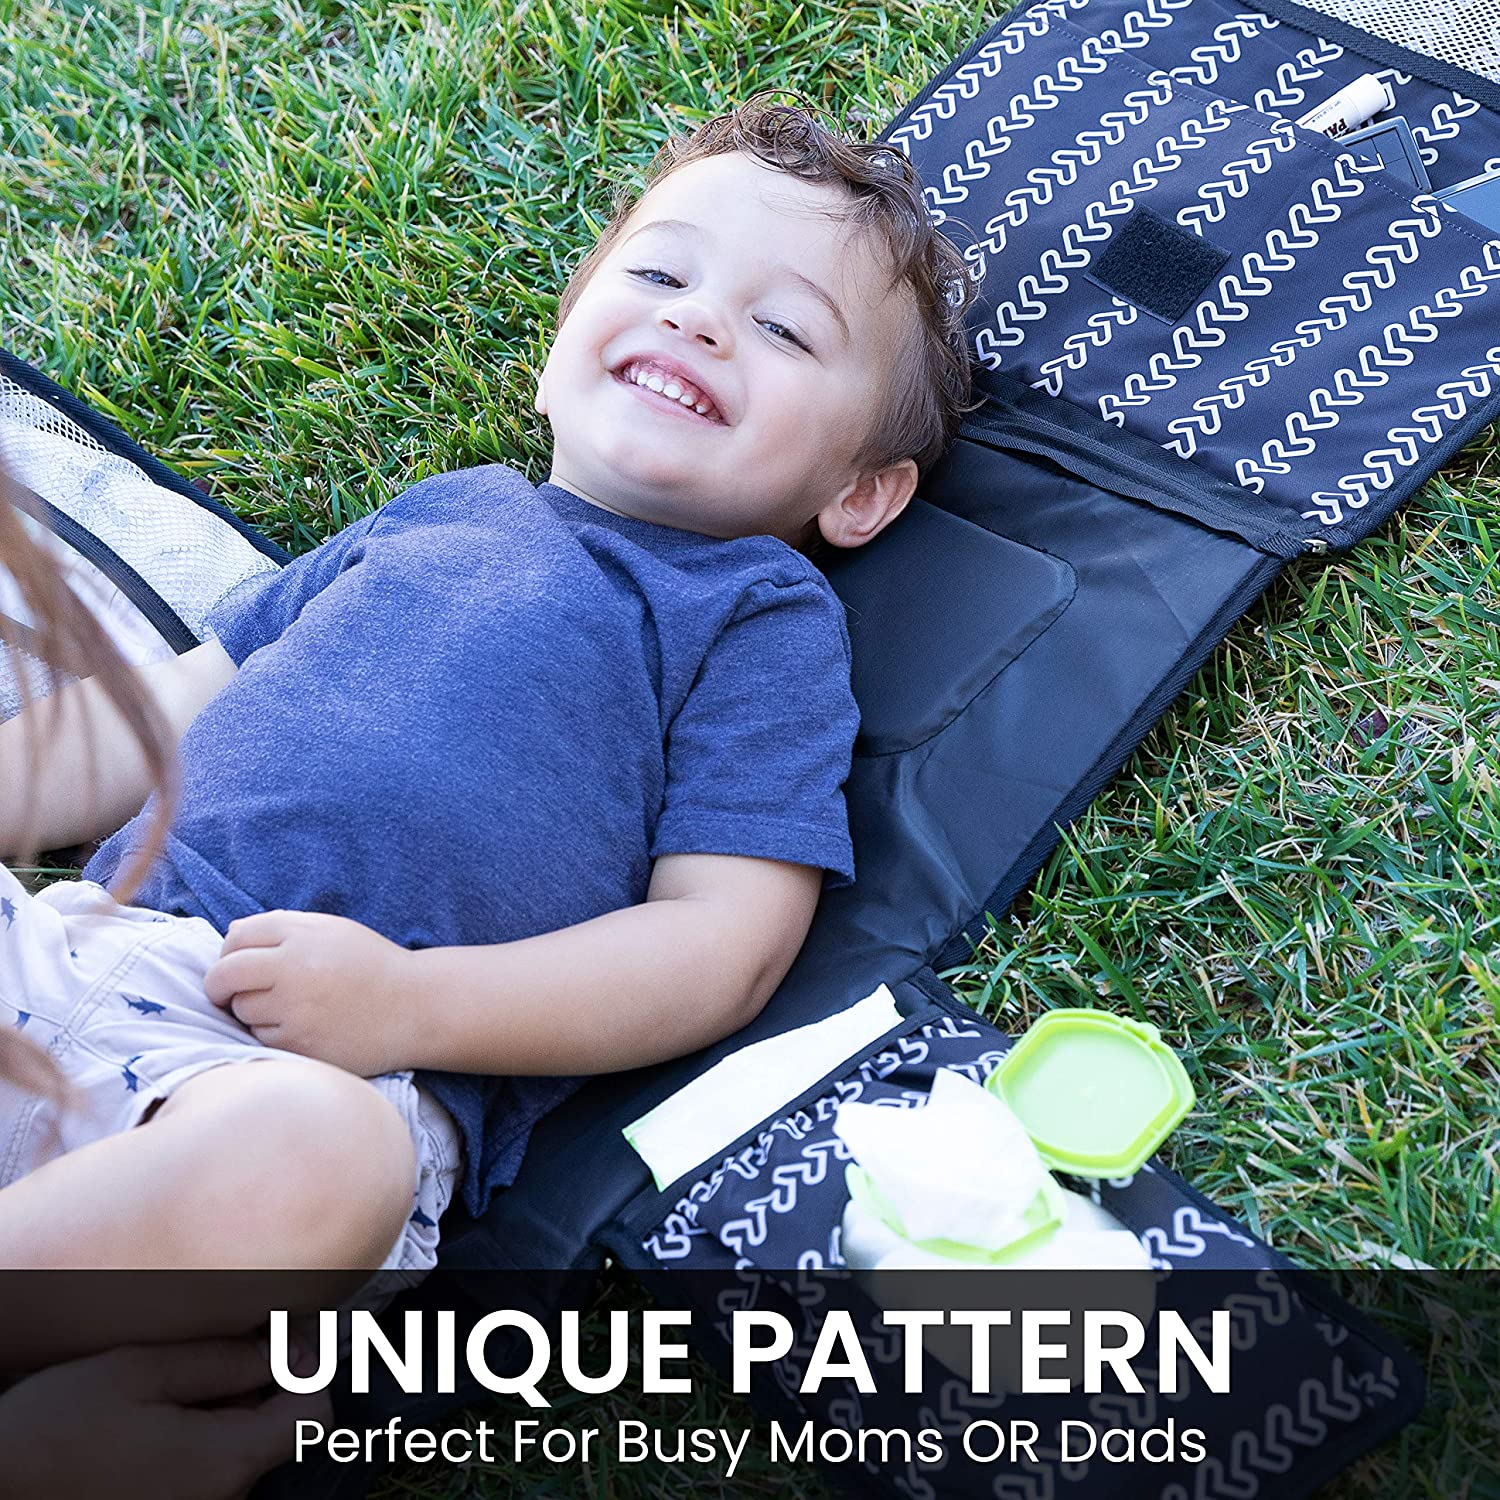 2 Extra Pockets for Wipes Creams Powder Black Waterproof Travel Mat and More Memory Foam Head Pillow Portable Changing Pad for Baby Diaper Bag